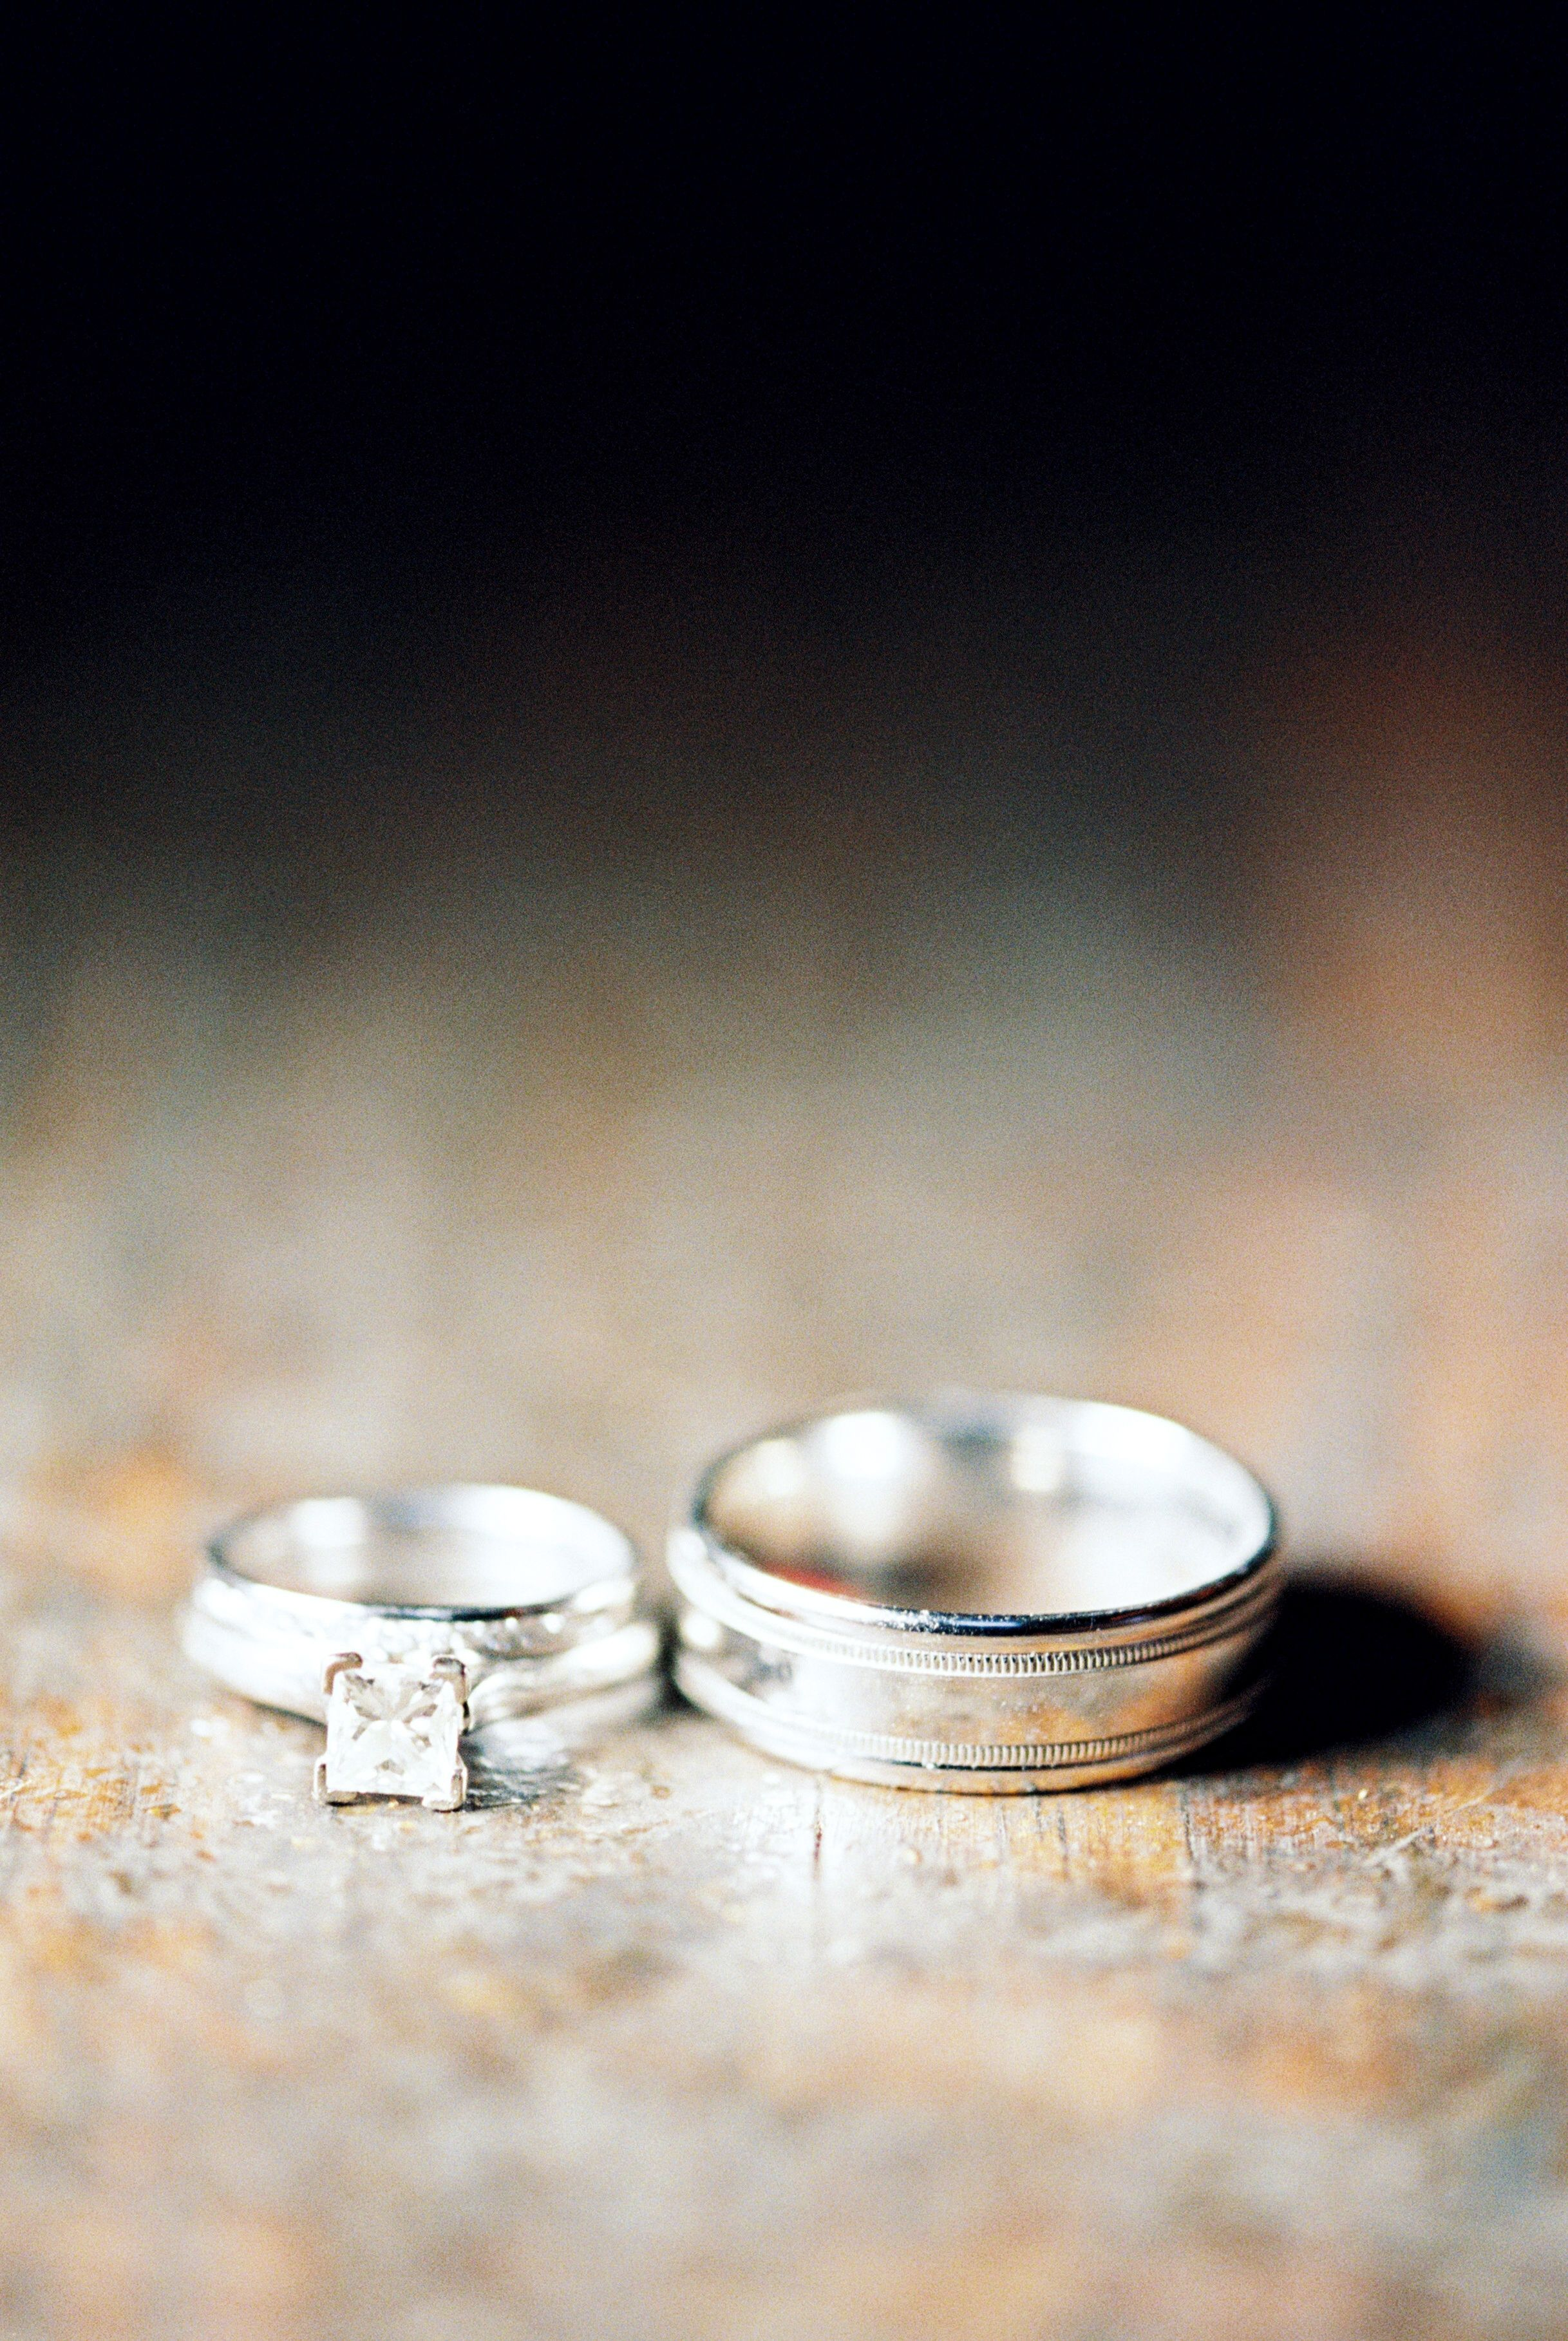 Classic Wedding Bands In Hogansville Ga Mylife Photography More Http Www Theknot Com W Classic Wedding Band Engagement Ring Wedding Band Engagement Rings